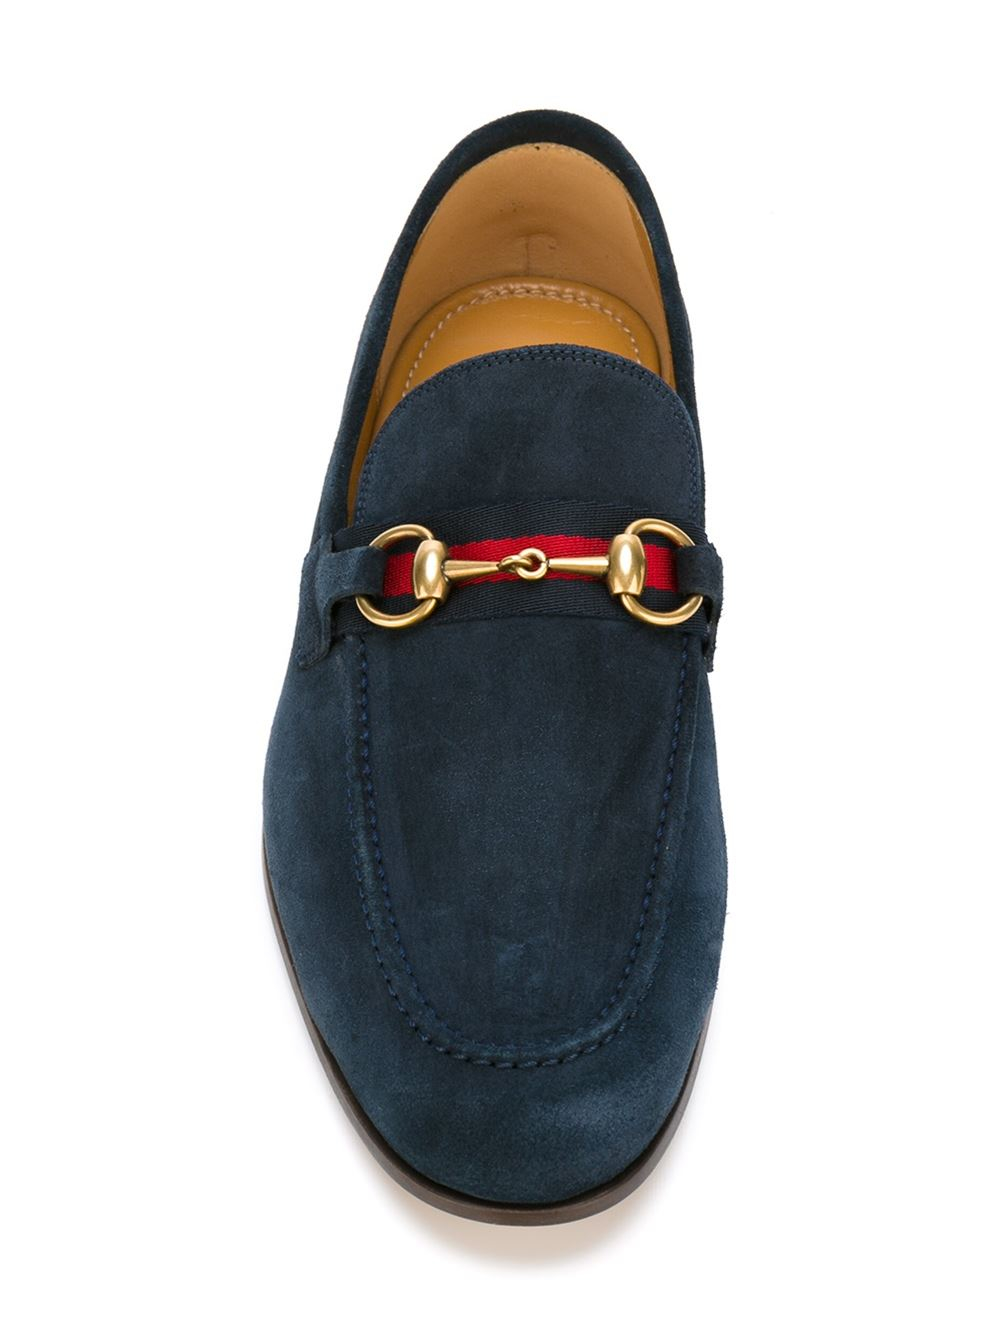 Gucci Suede Loafers In Blue For Men | Lyst